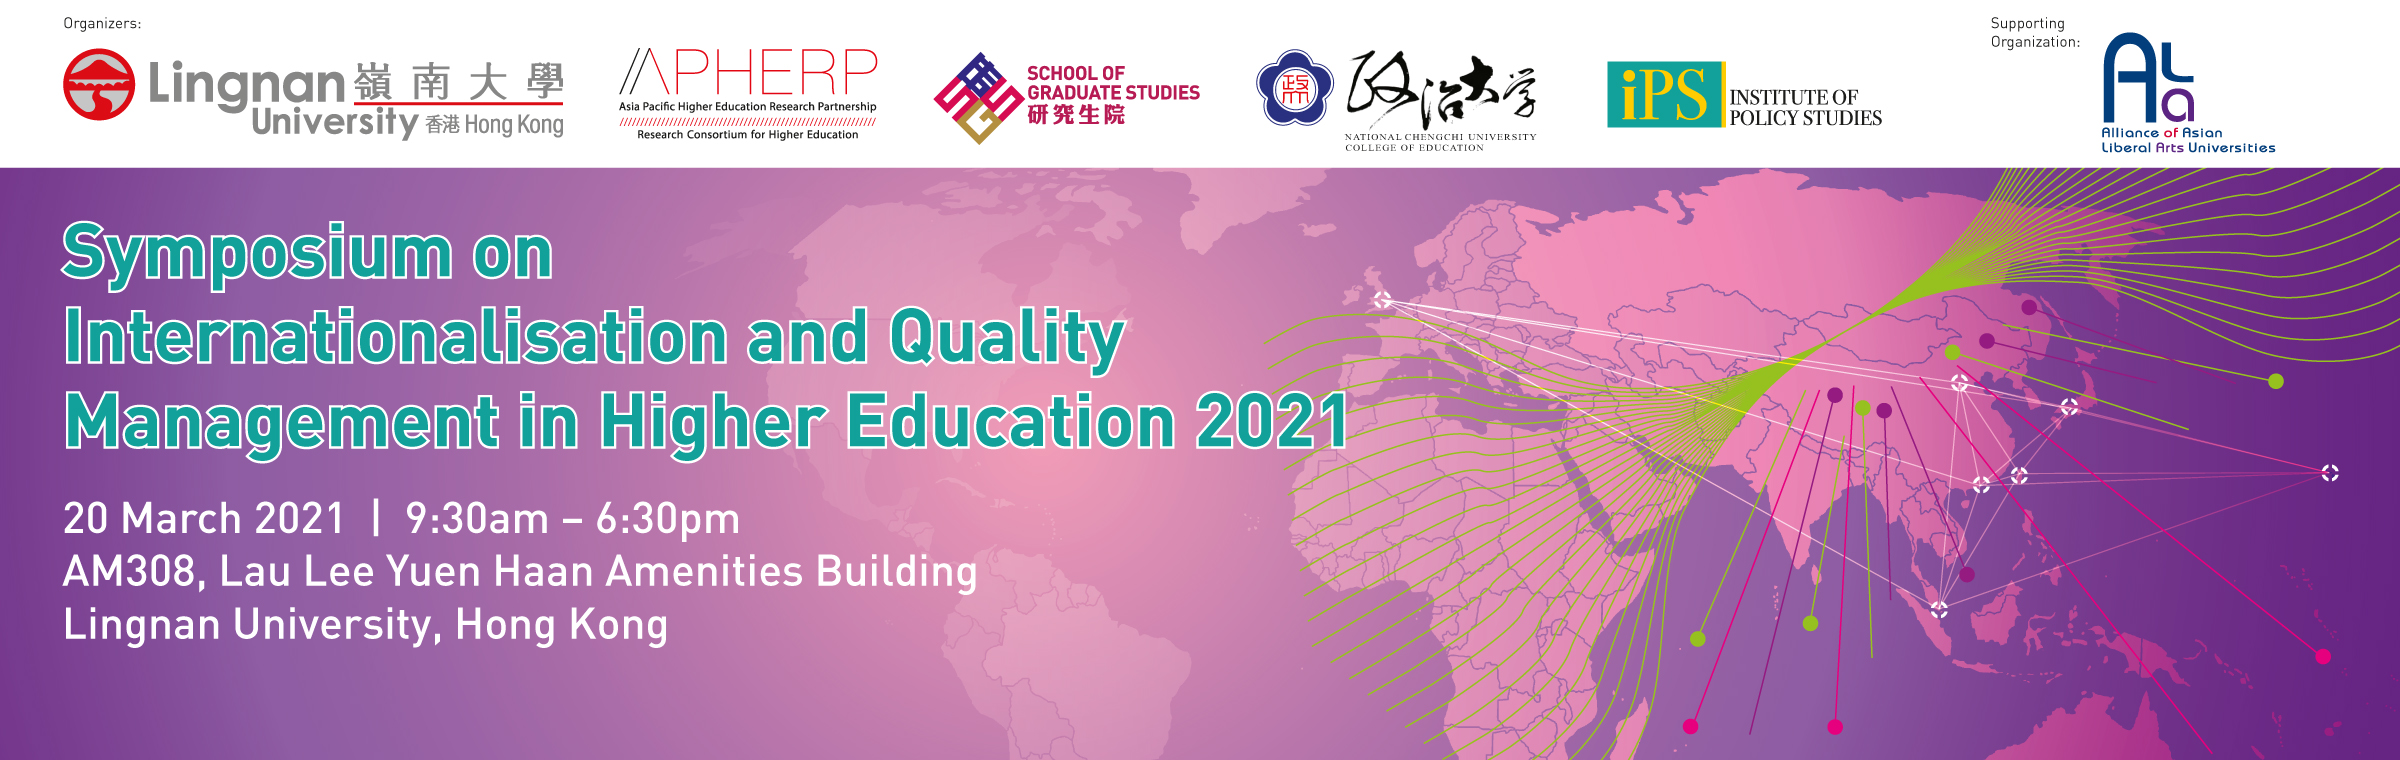 Symposium on Internationalisation and Quality Management in Higher Education 2021